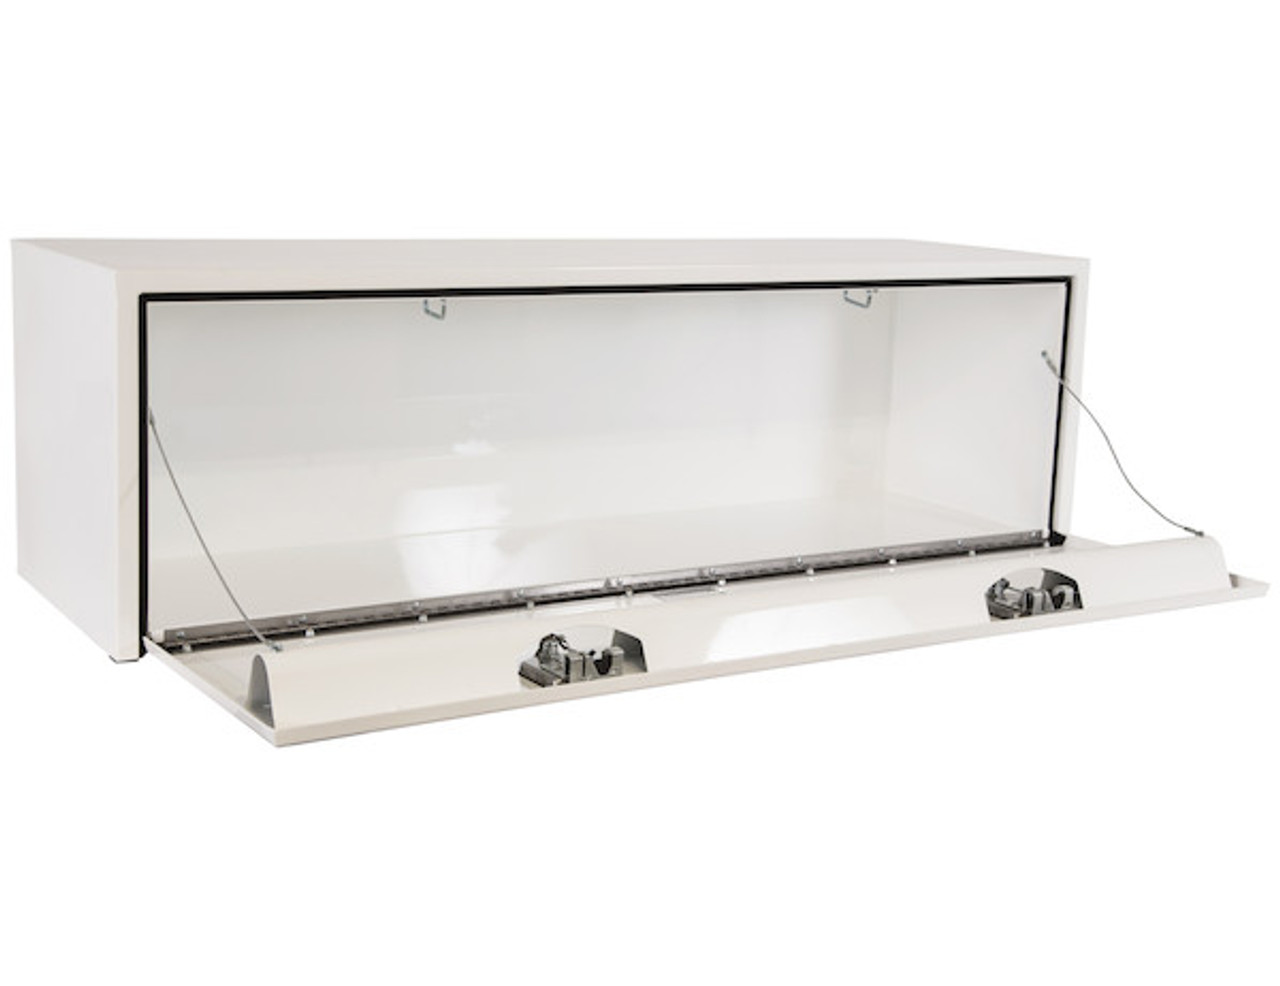 """1702210 BUYERS PRODUCTS WHITE STEEL UNDERBODY TRUCK TOOLBOX WITH PADDLE LATCH 18""""HX18""""DX48""""W"""